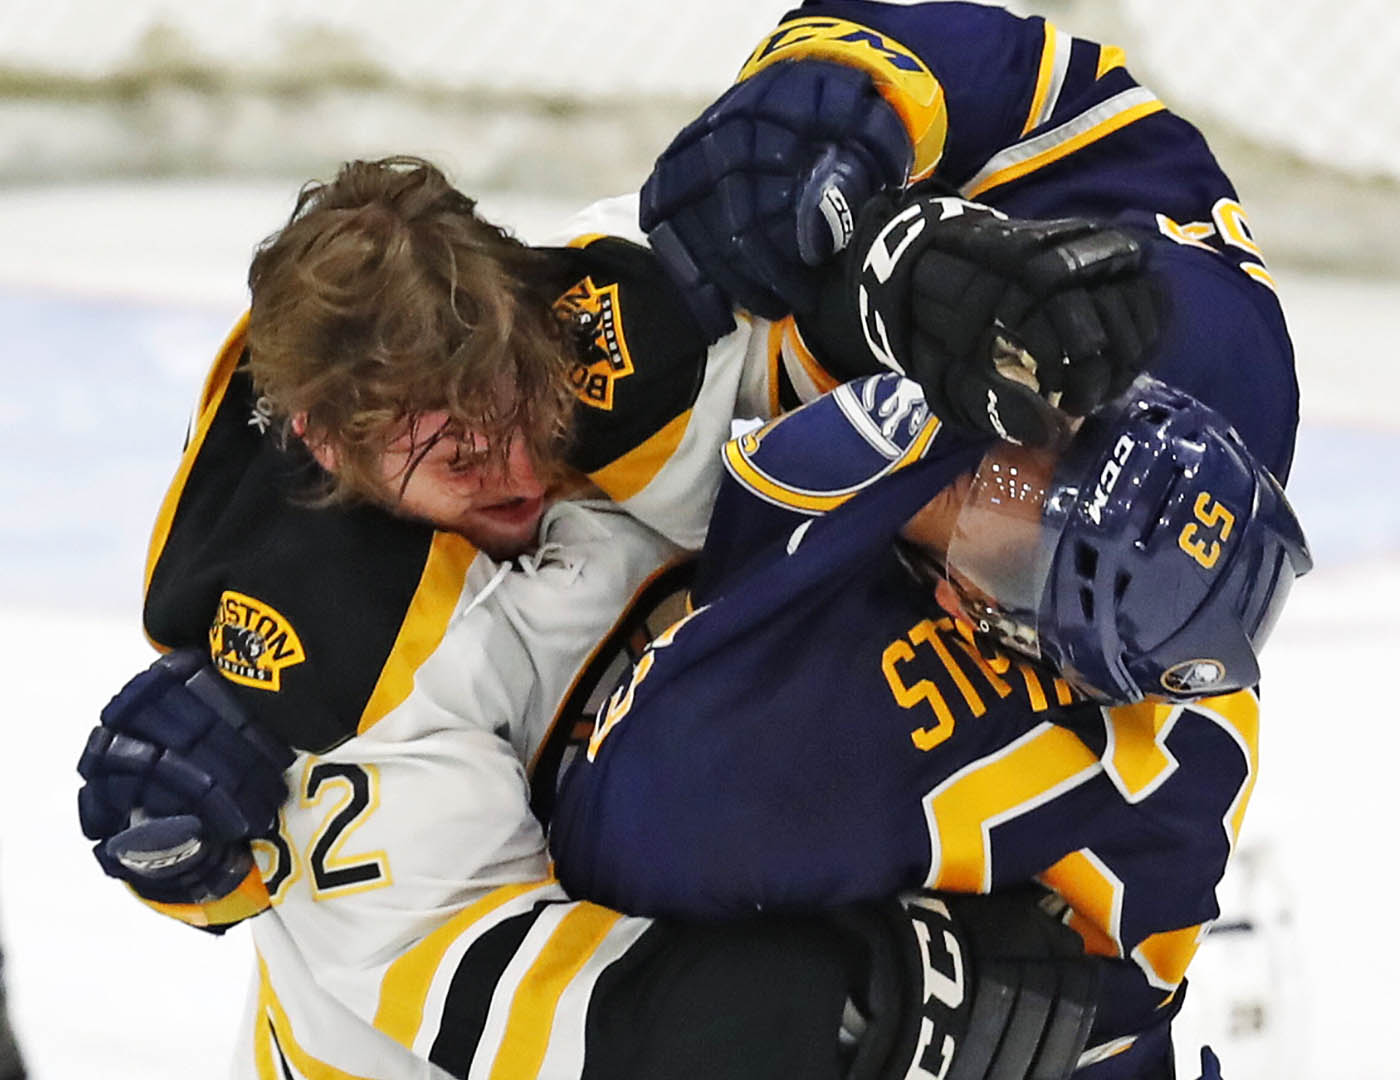 Buffalo Sabres Devante Stephens and Bostin Bruins Jesse Gabrielle get into a scrap during first period action in the prospects game at HarborCenter on Monday, Sept. 19, 2016. (Harry Scull Jr./Buffalo News)